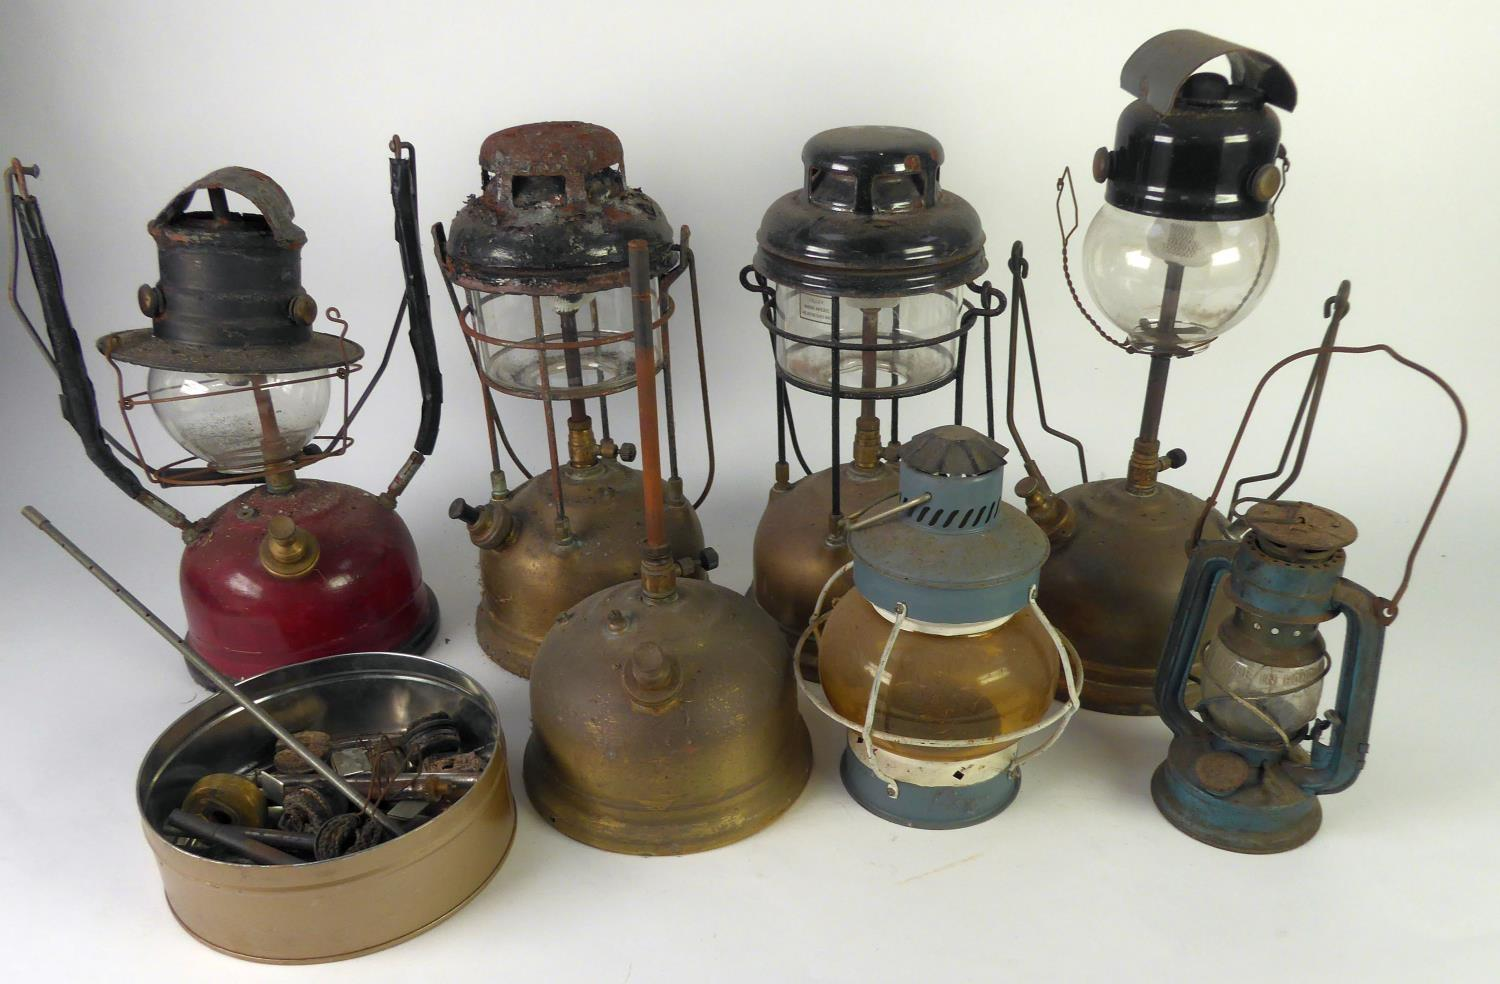 Lot 455 - THREE TILLEY LAMPS with brass tanks, ANOTHER with red enamelled tank, two SMALL LANTERNS and part of